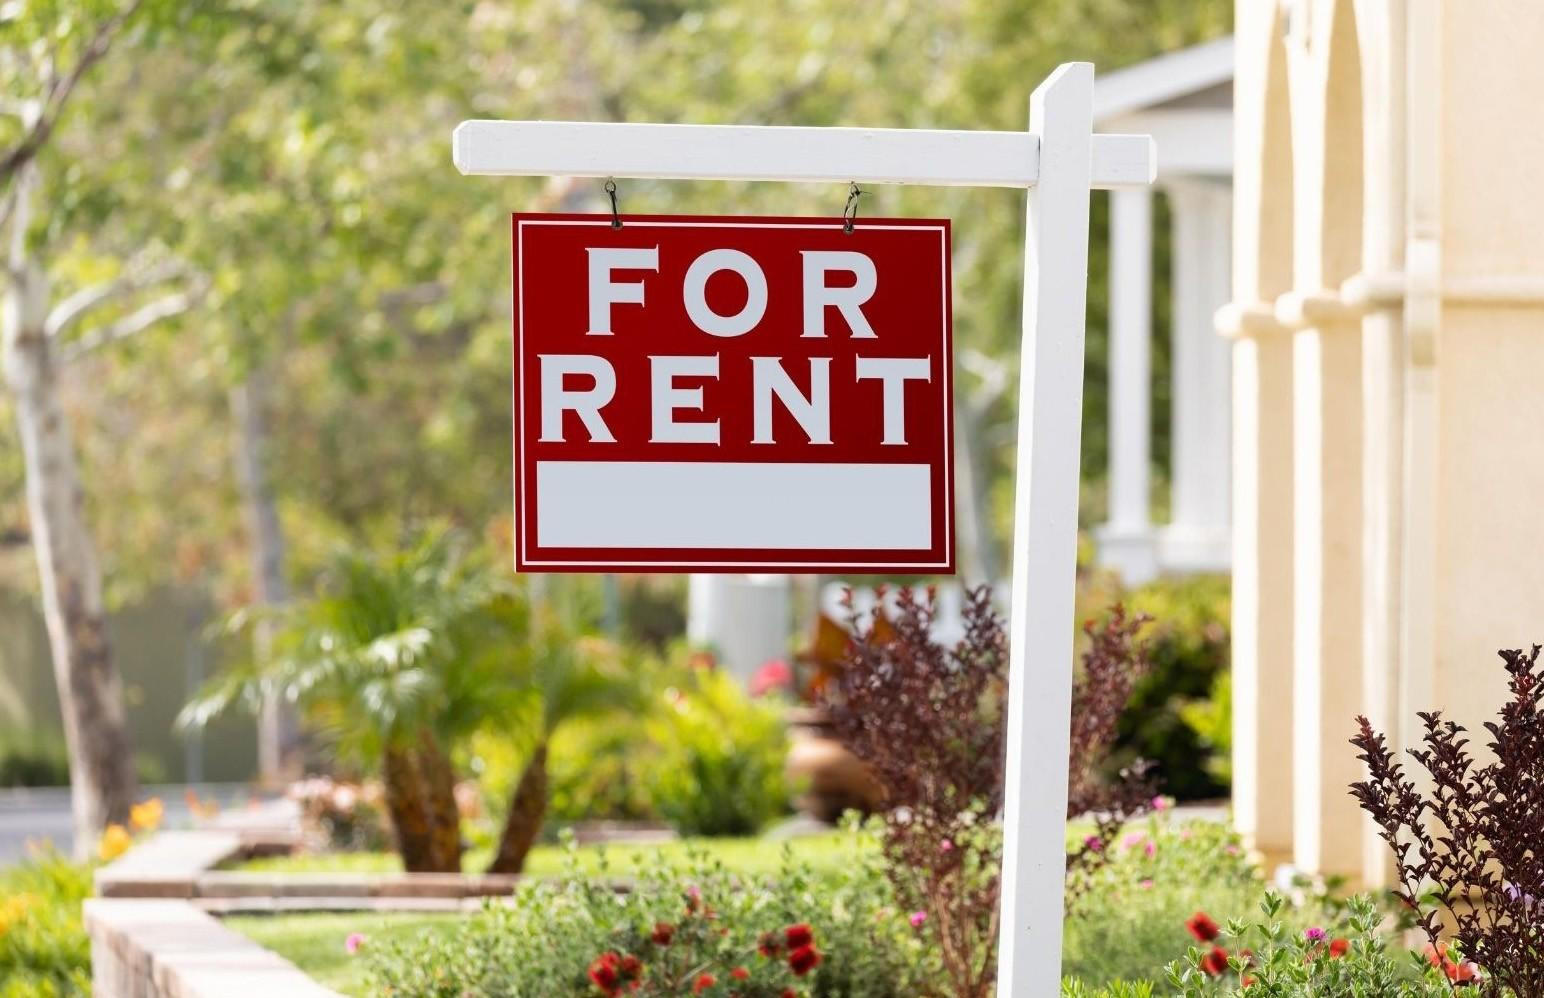 Property Management, COVID, Rent Control & Evictions